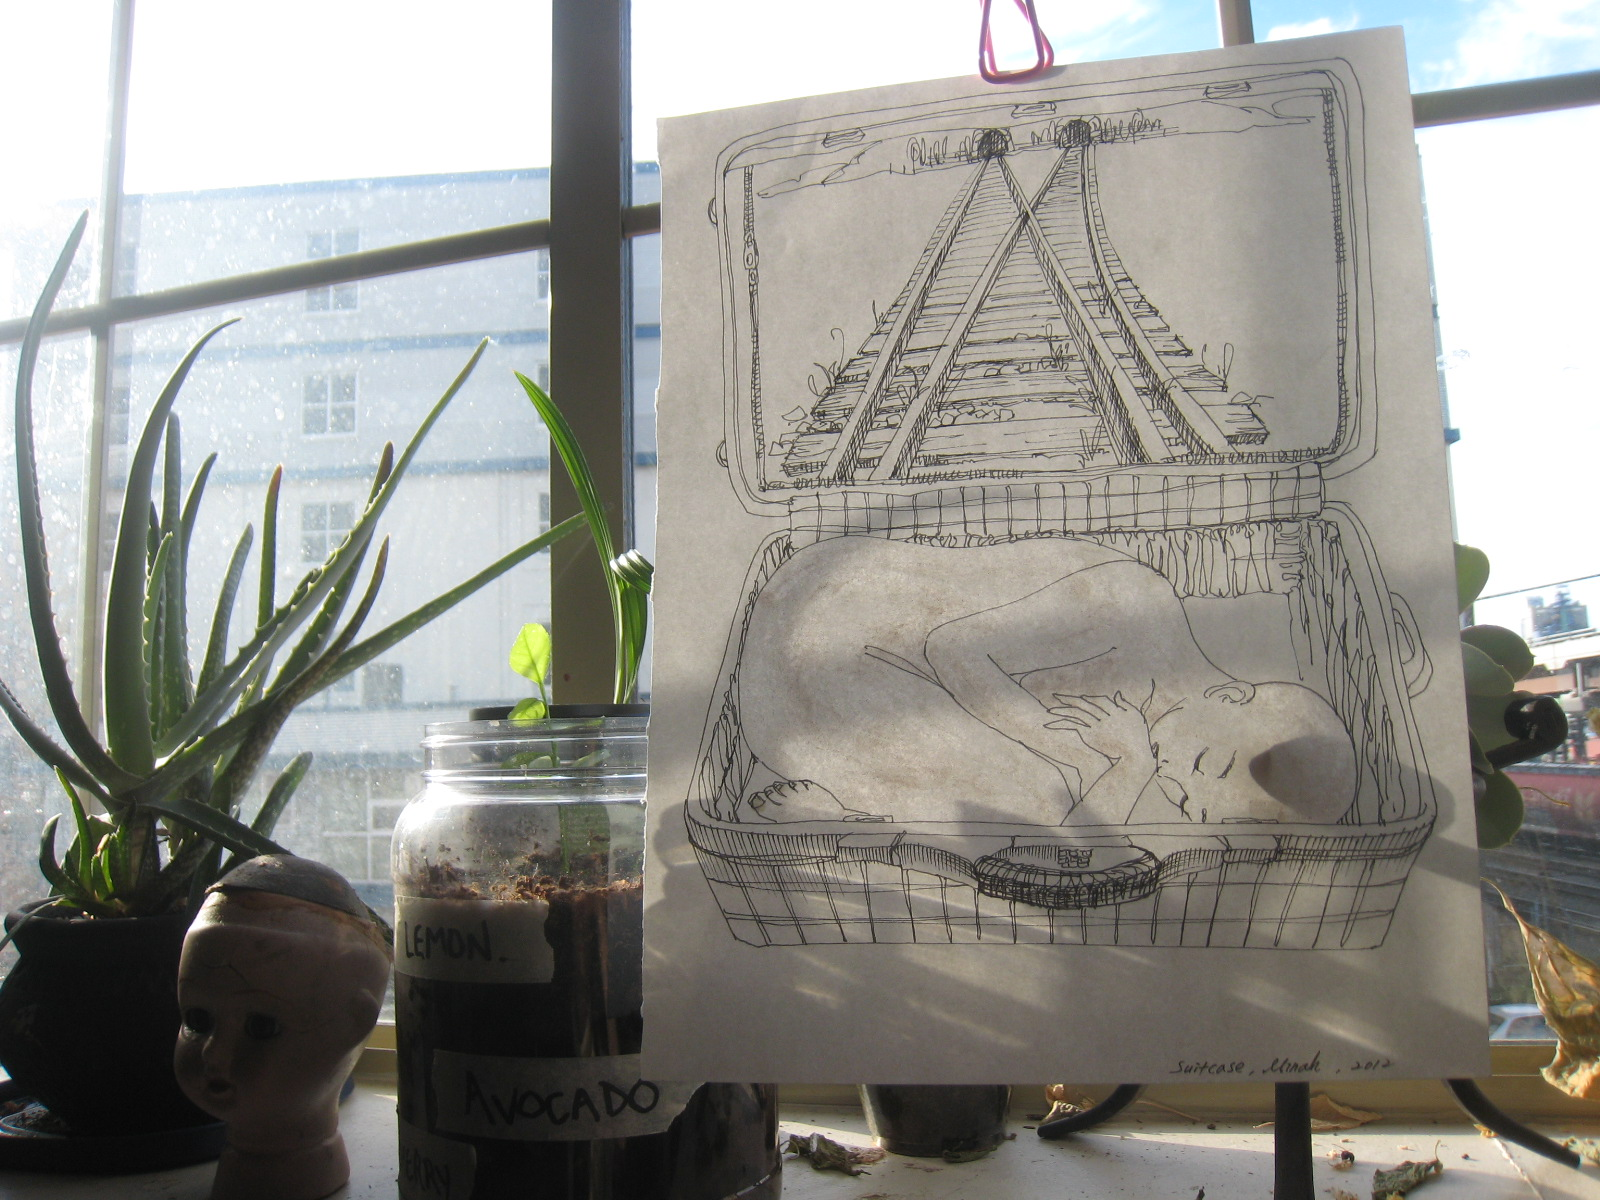 Minah Lee's drawing 'suitcase' hanging by the window with plants_portal to art action earwig website